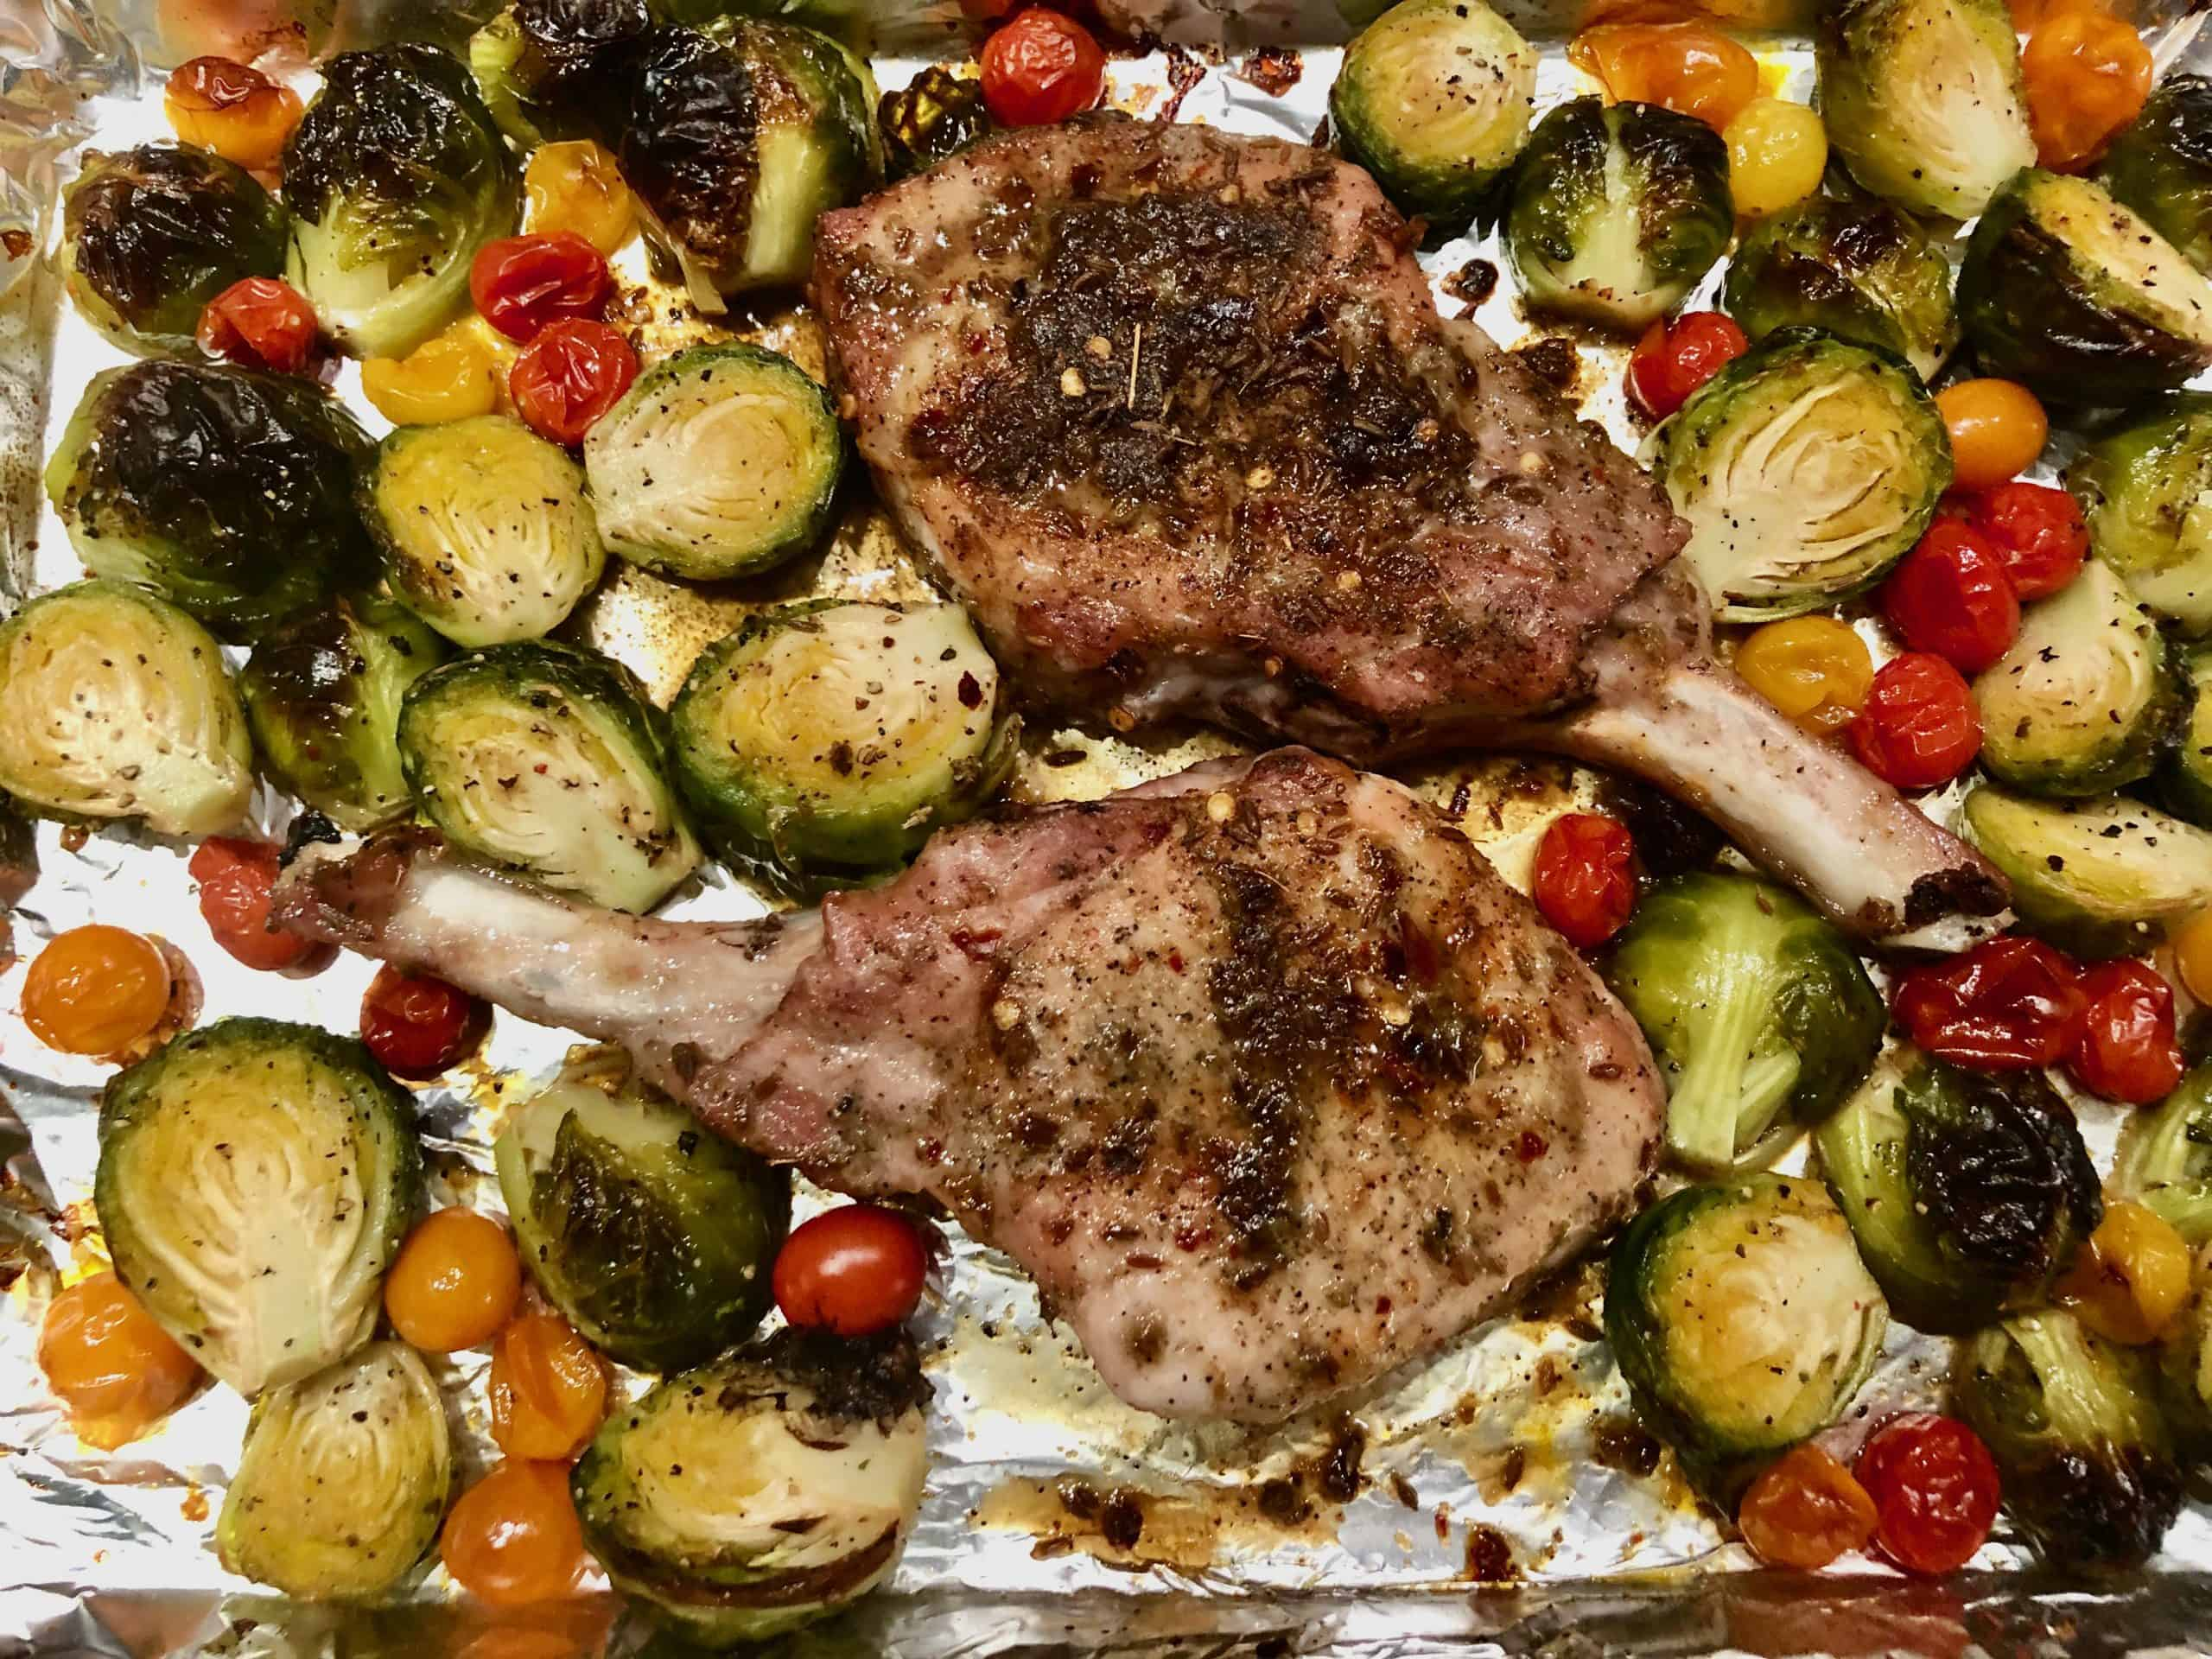 Sheet Pan Dinner: Cumin Pork Chops with Maple-Glazed Brussels Sprouts and Tiny Tomatoes.